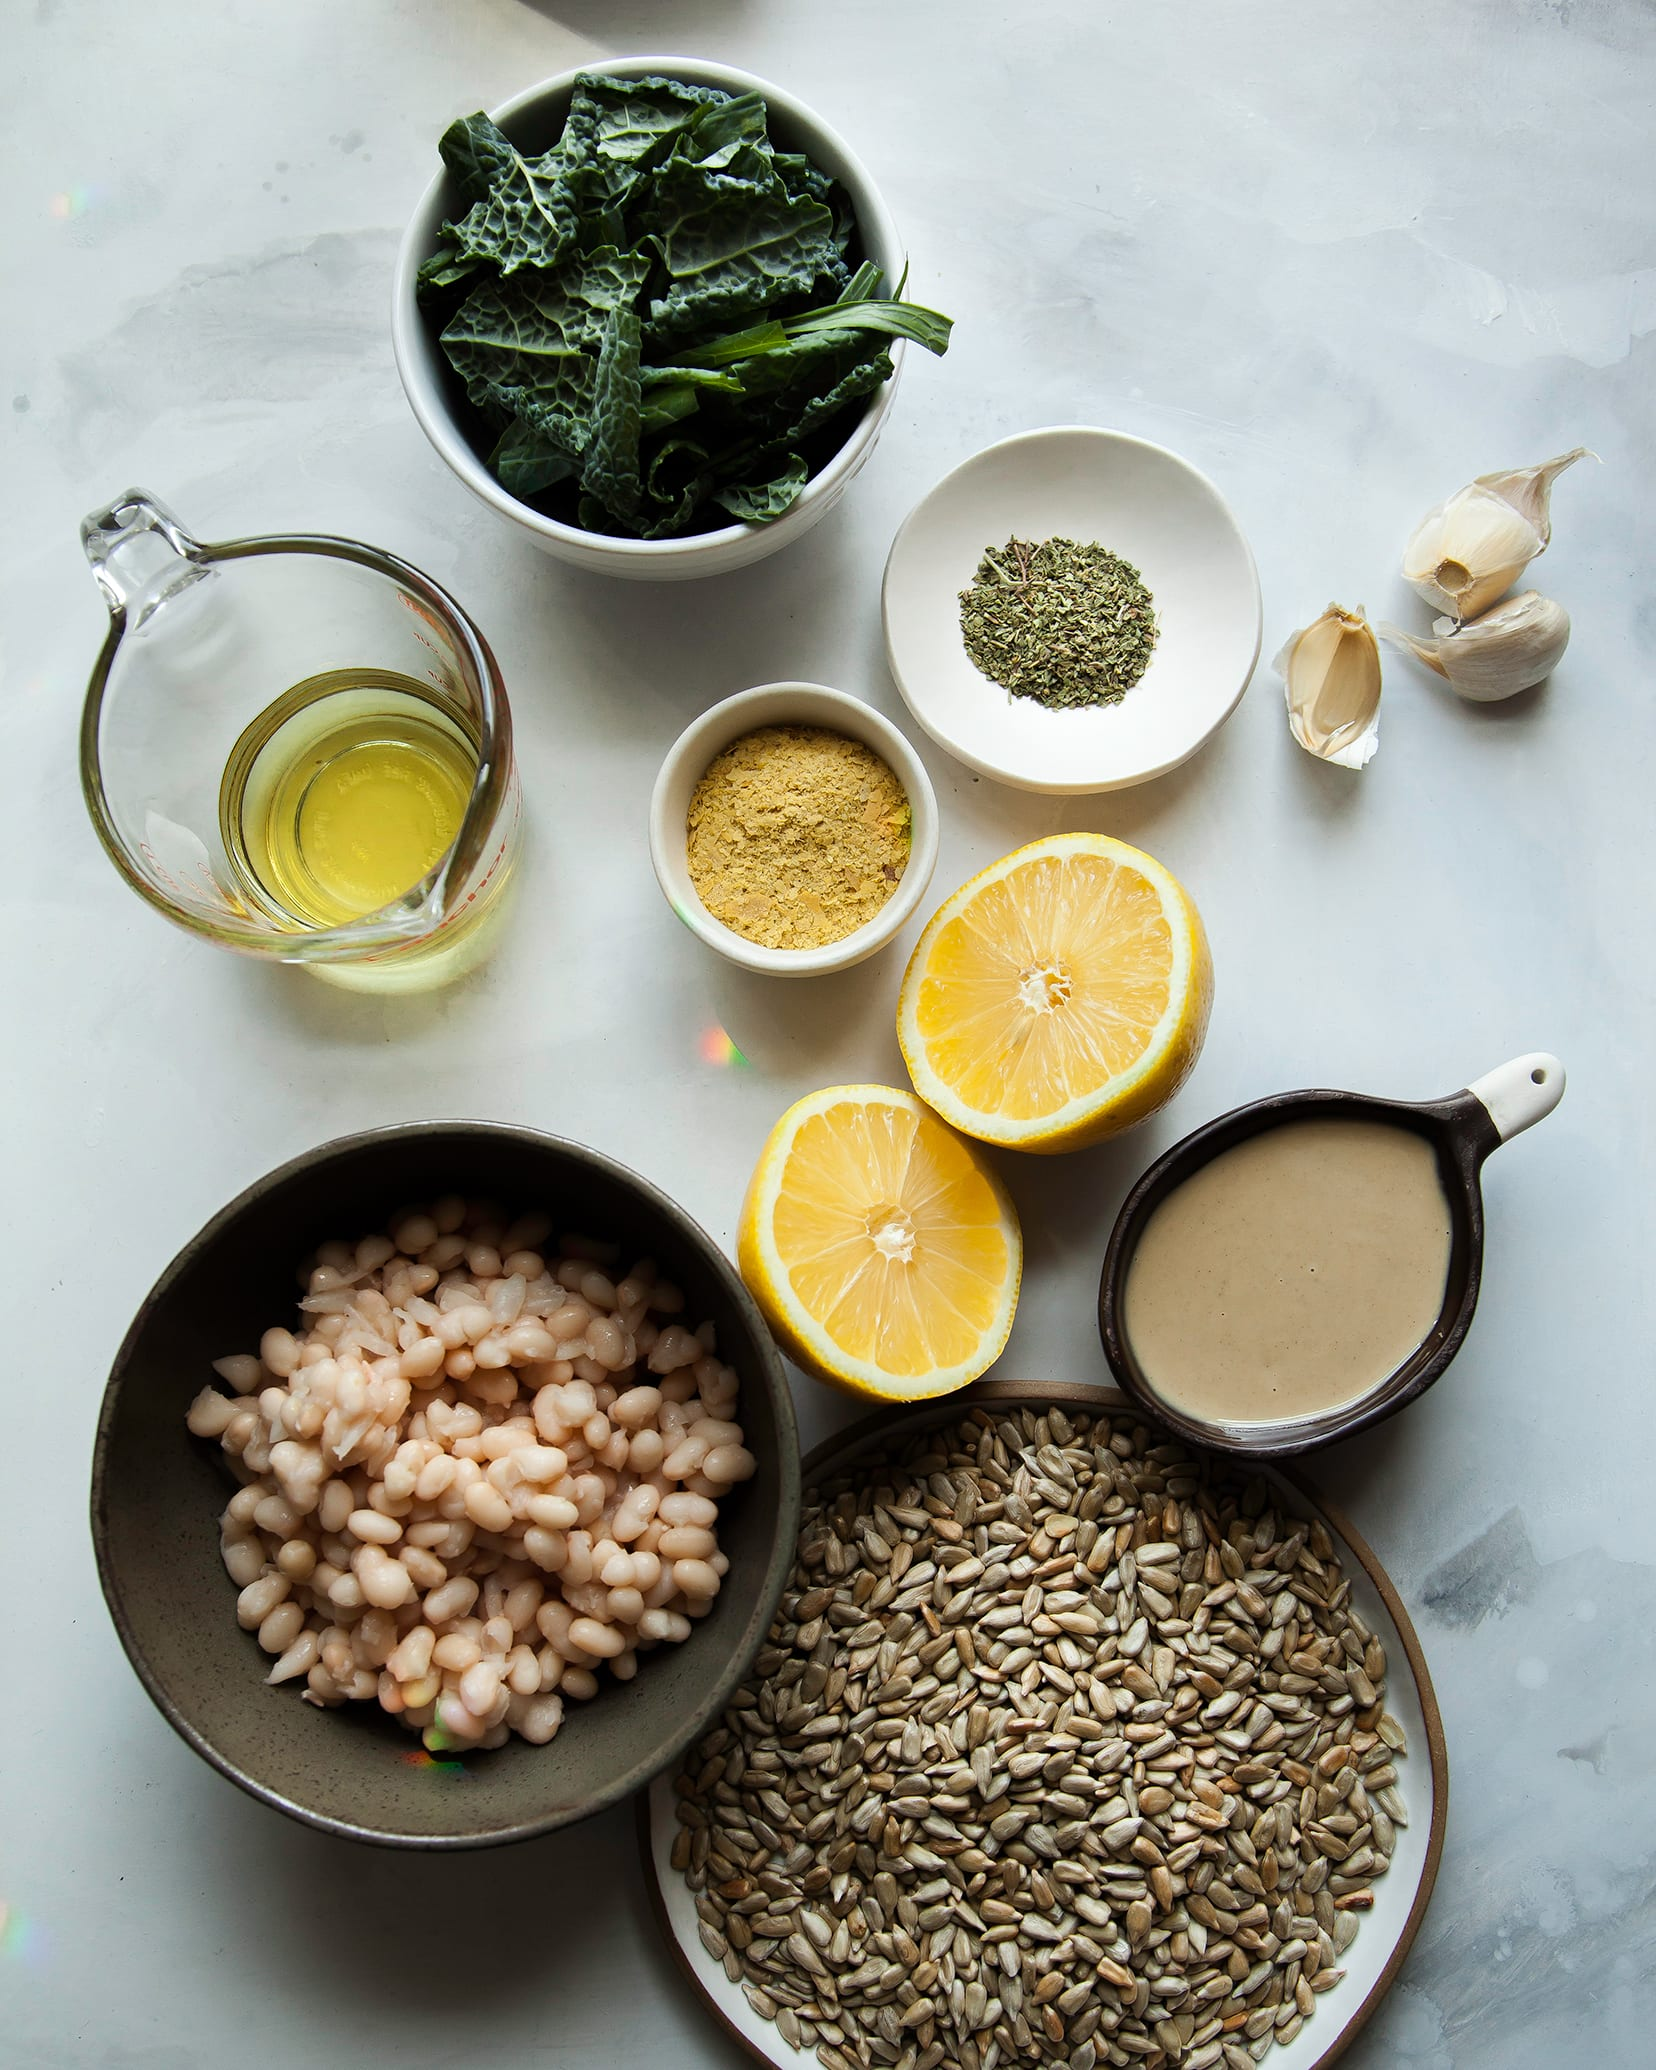 Overhead image of ingredients used for a creamy kale pesto dip.